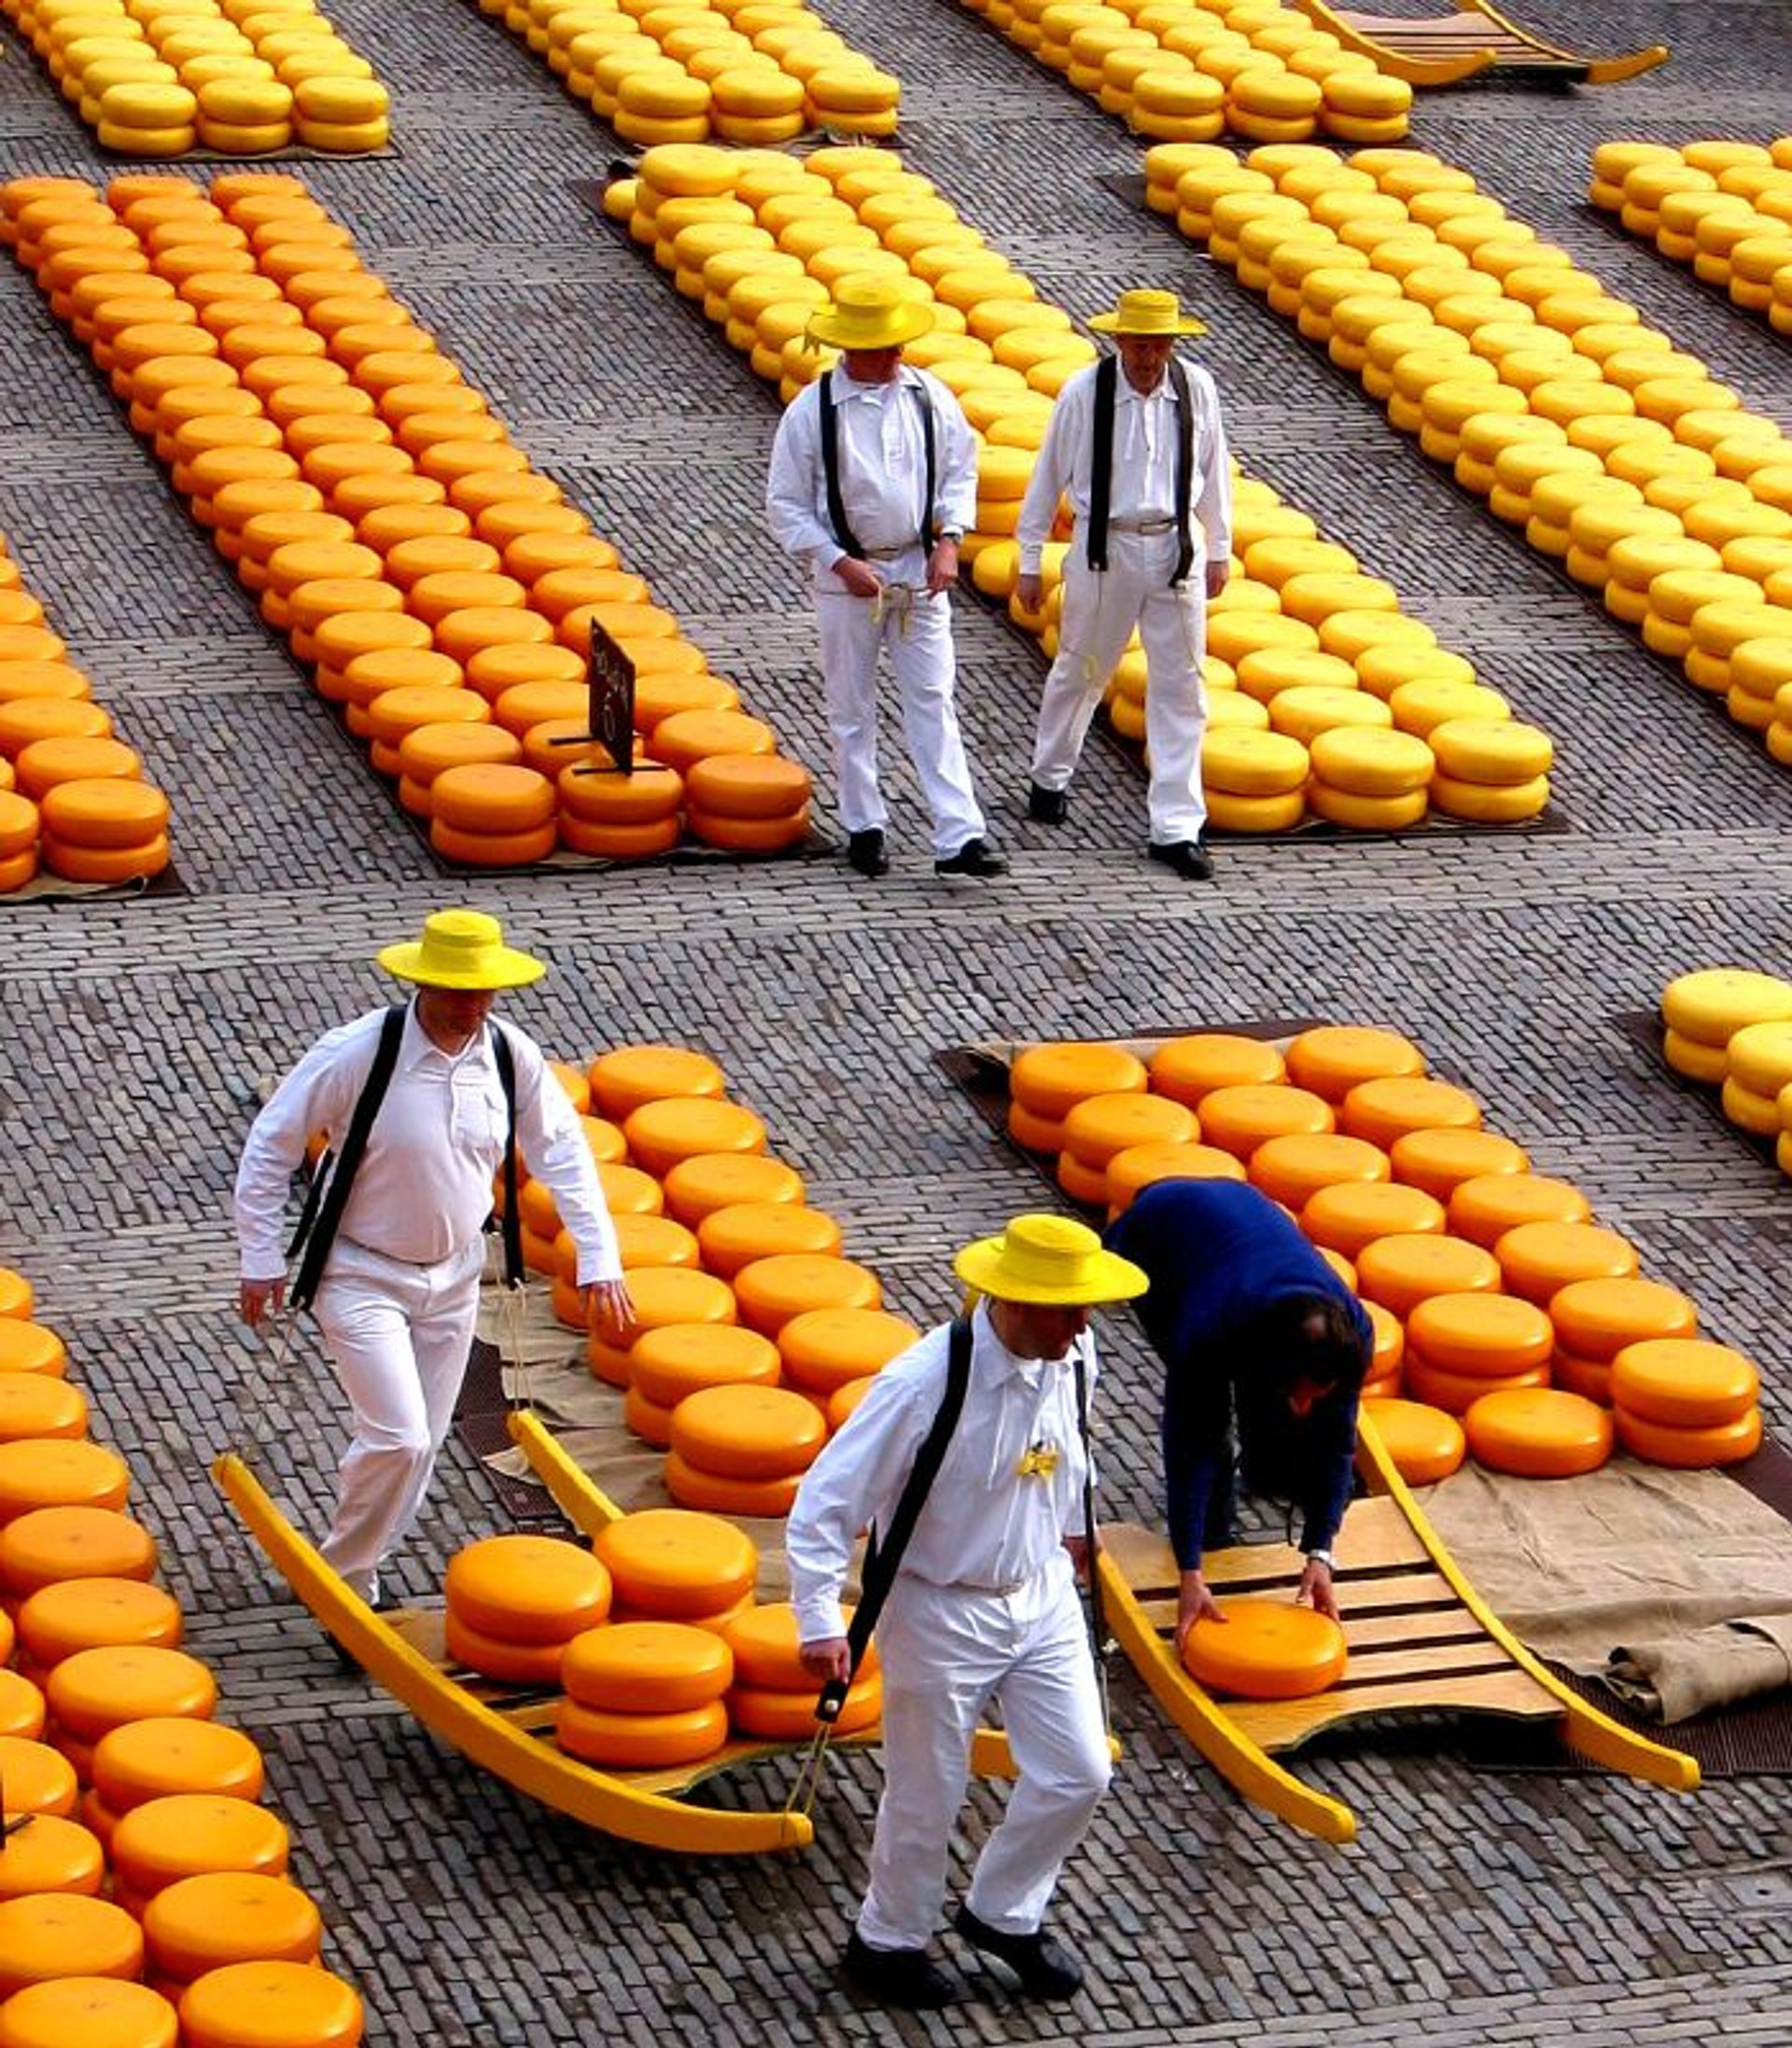 Alkmaar Cheese Market in The Netherlands - Best Season 2020